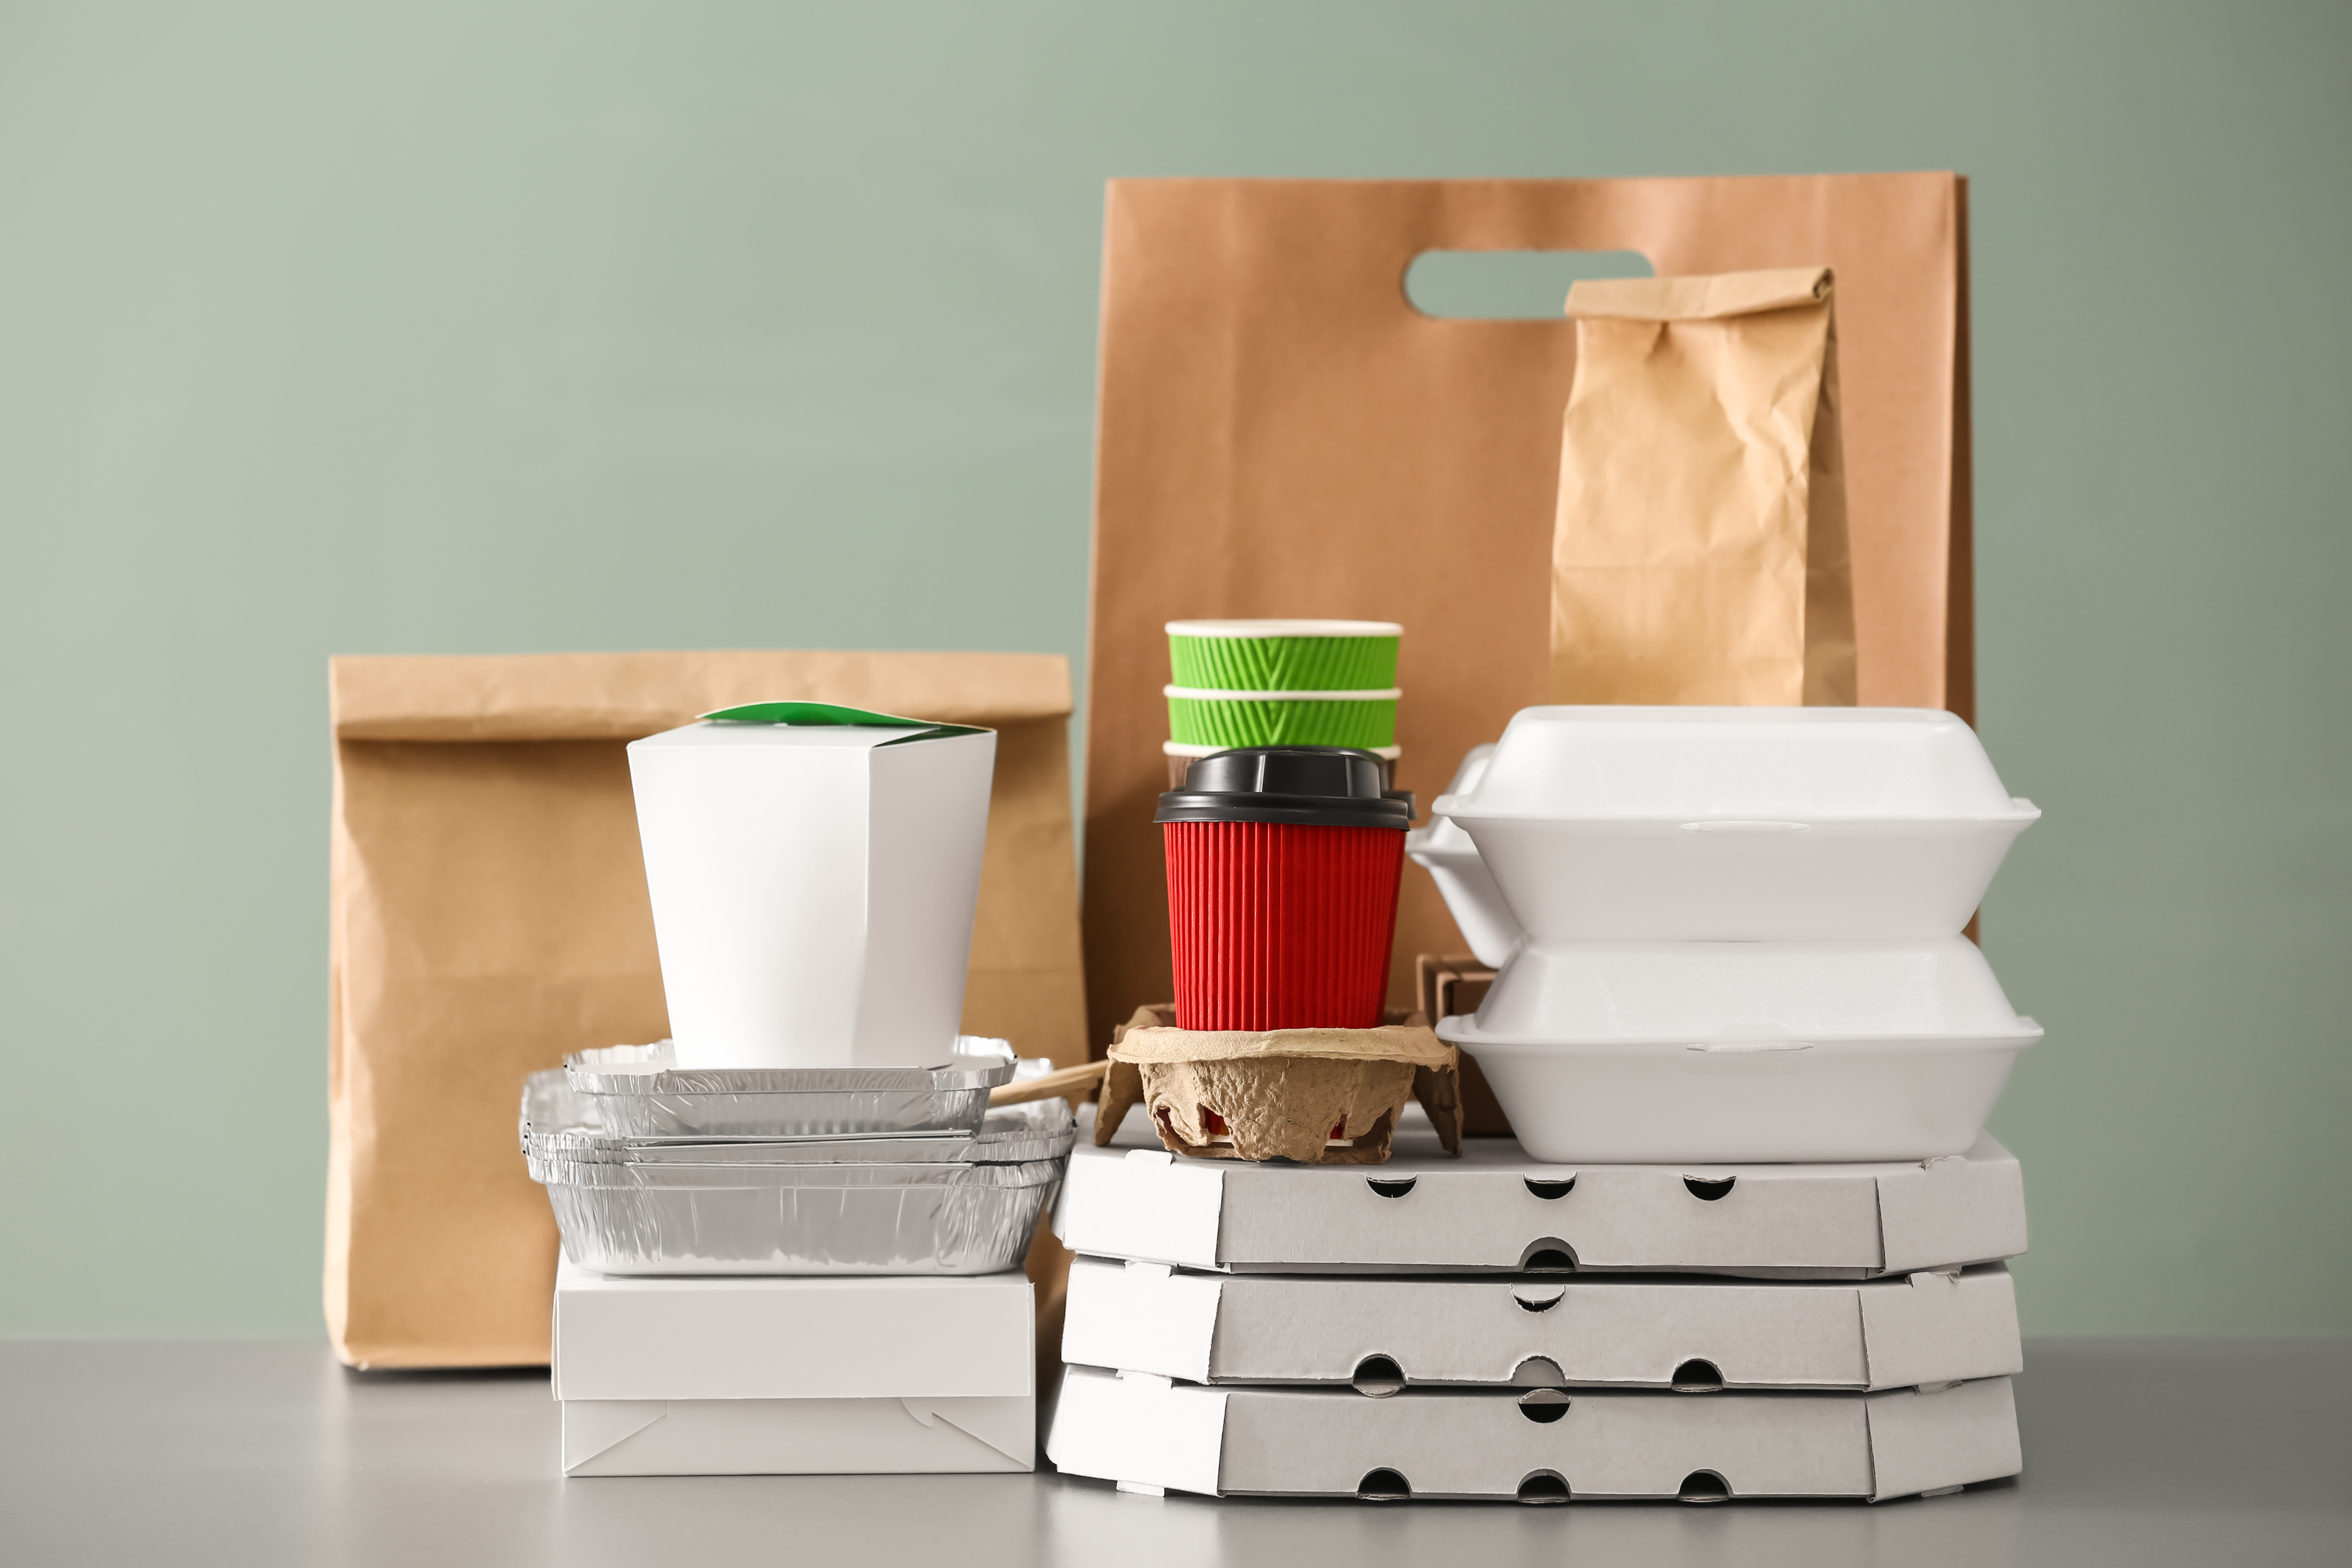 A display showing various takeout boxes, cups, and bags against a blank background